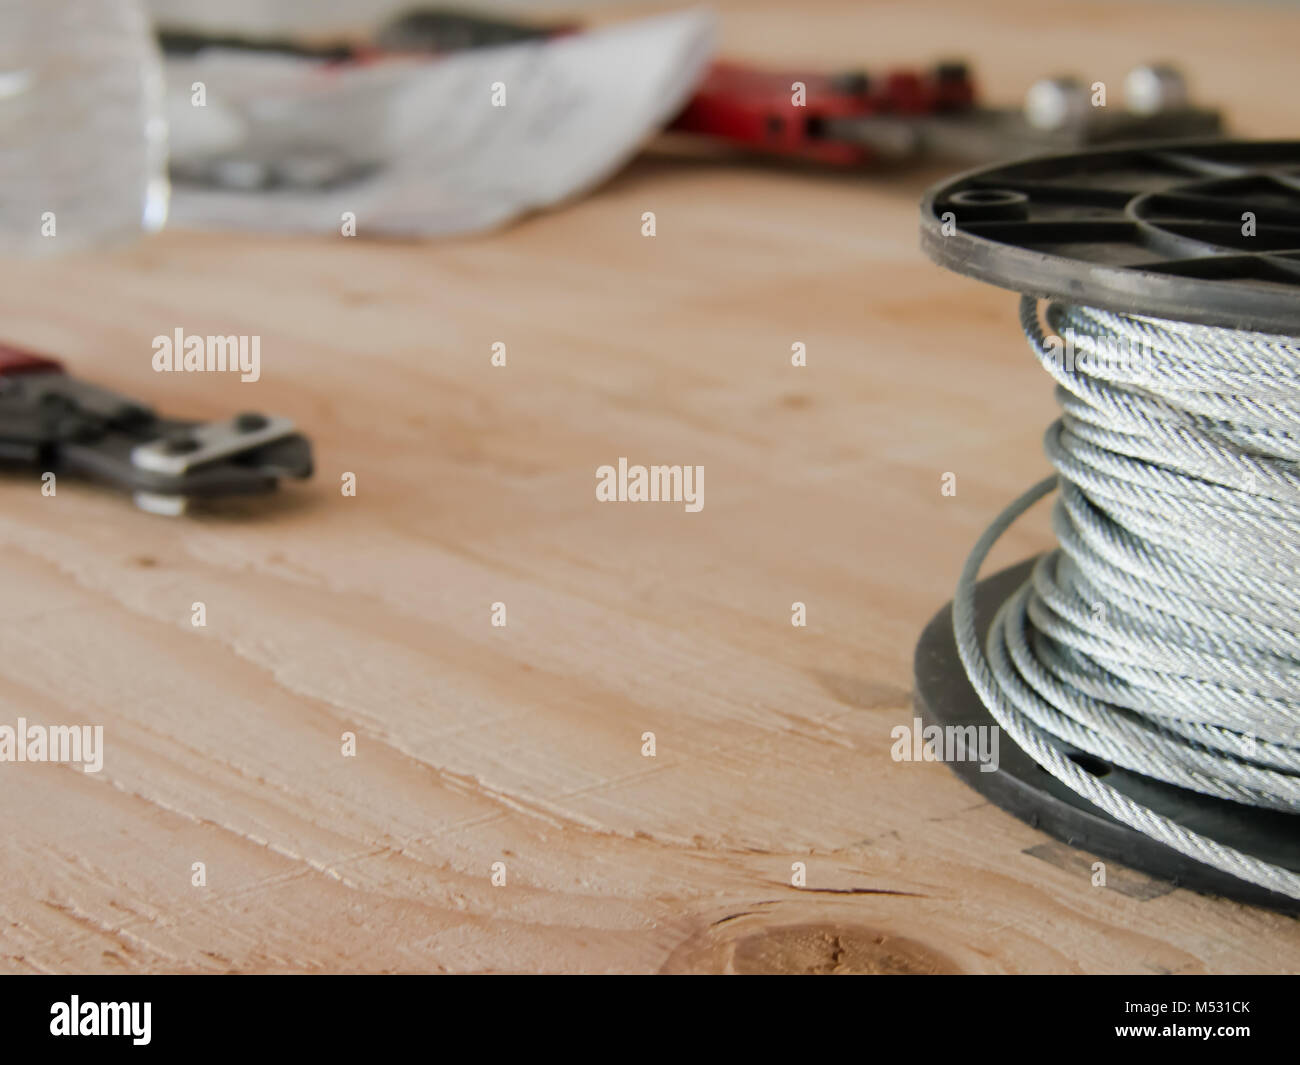 The Nipper and the Cable at the Construction Site - Stock Image